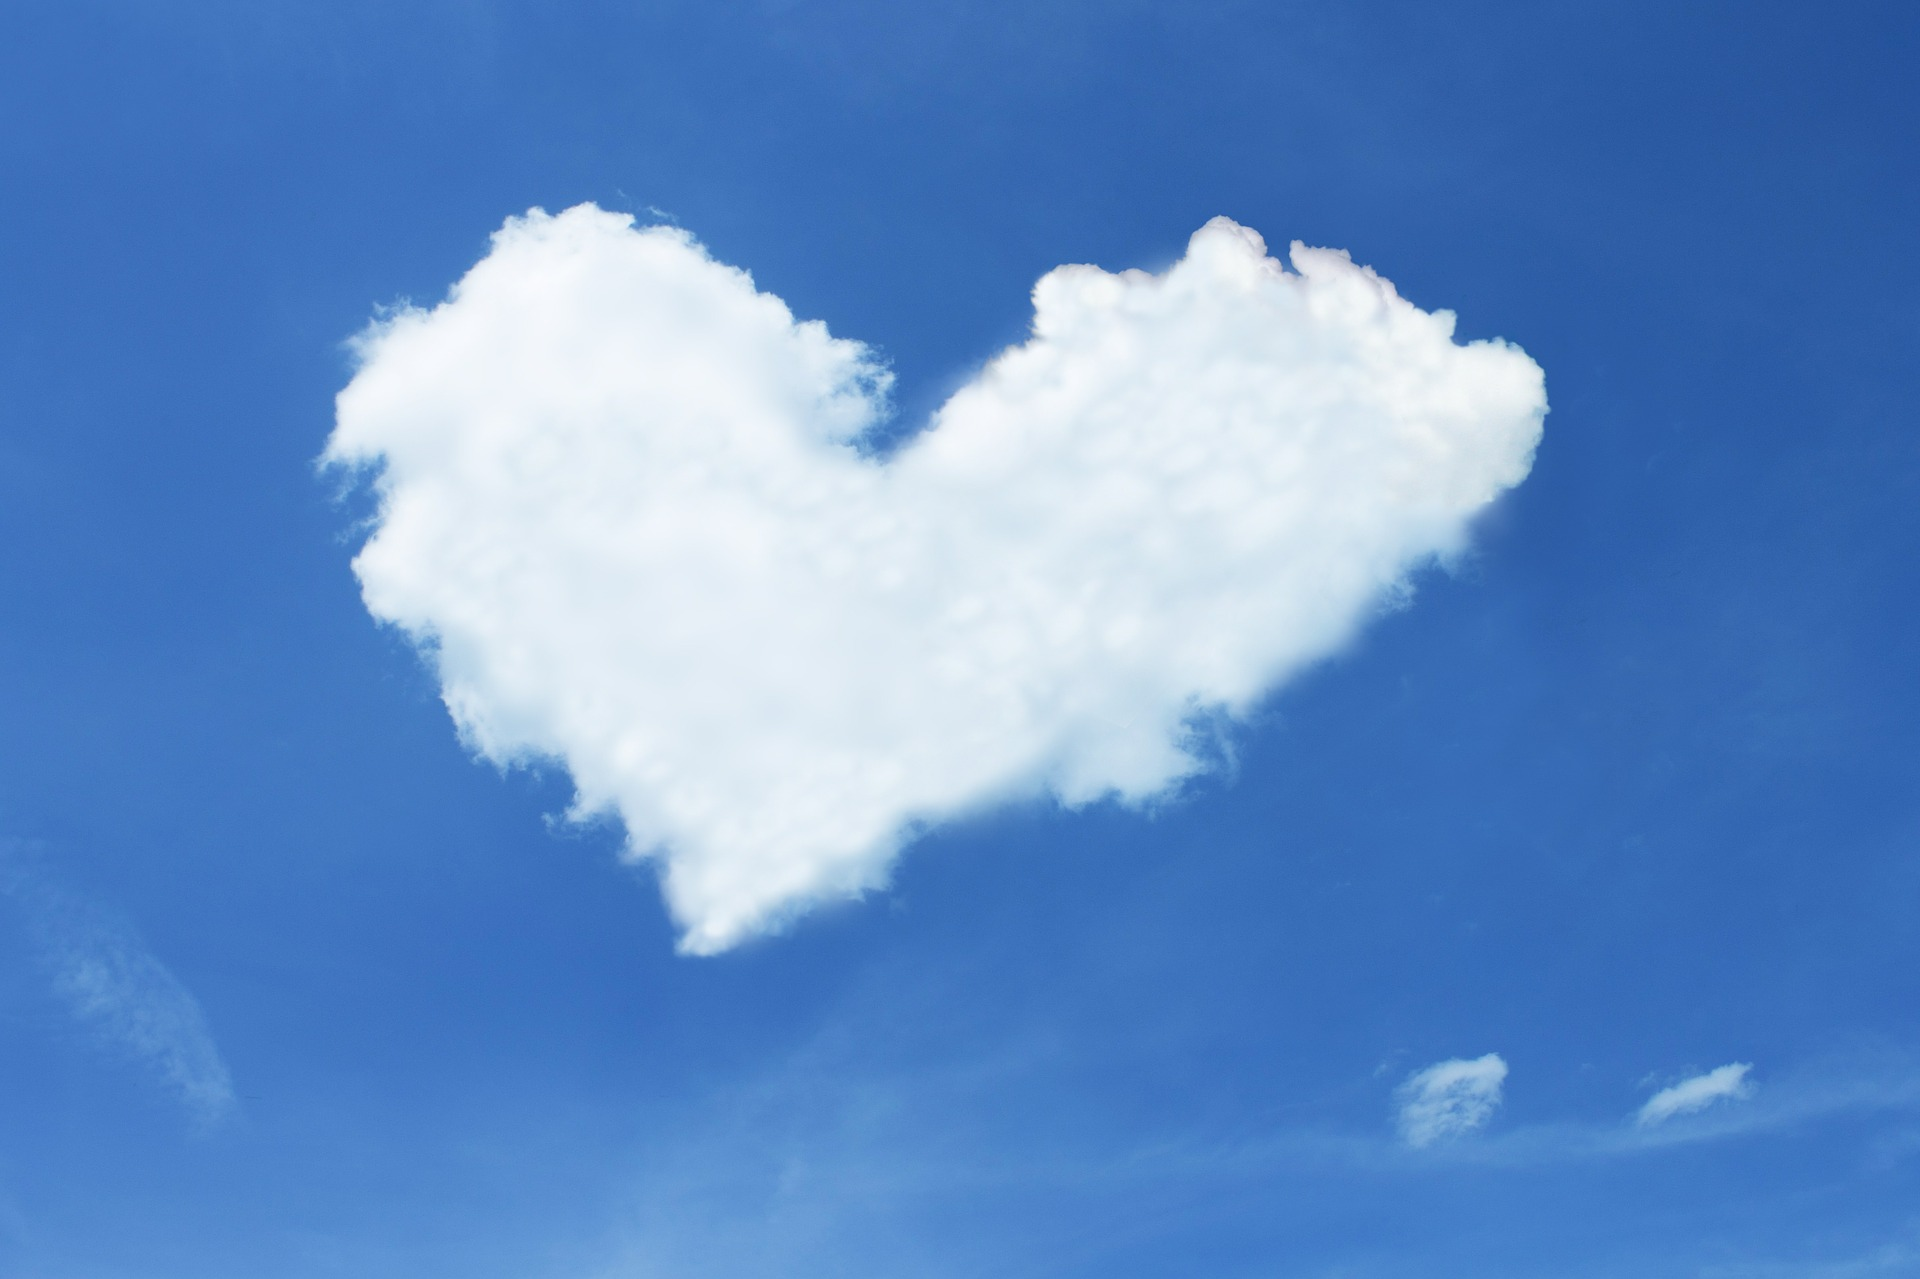 Clouds, heart. love_pixabay-1